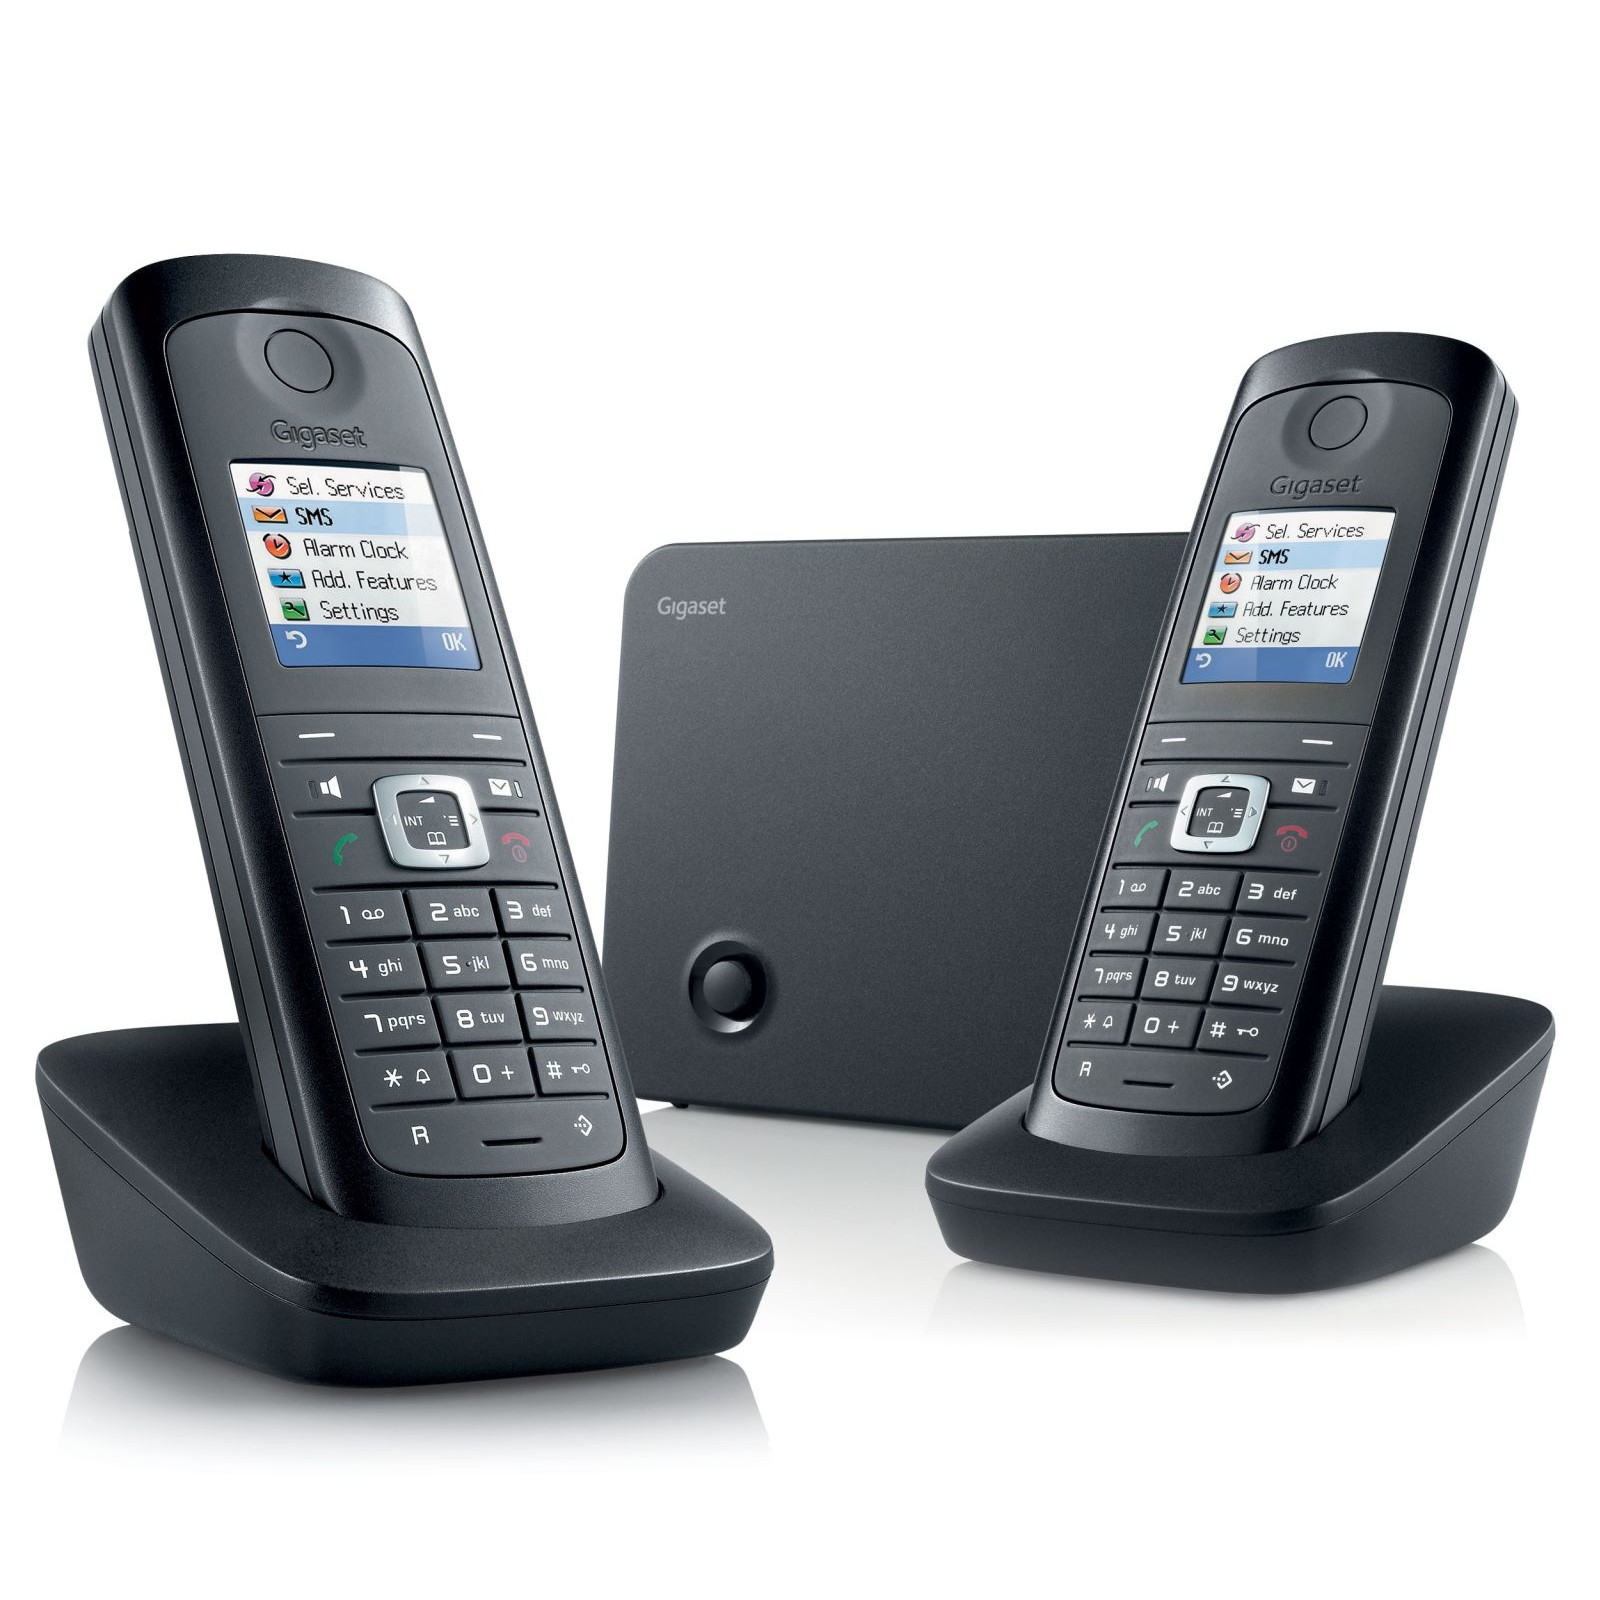 Siemens Gigaset E495 Twin Robust DECT Phones